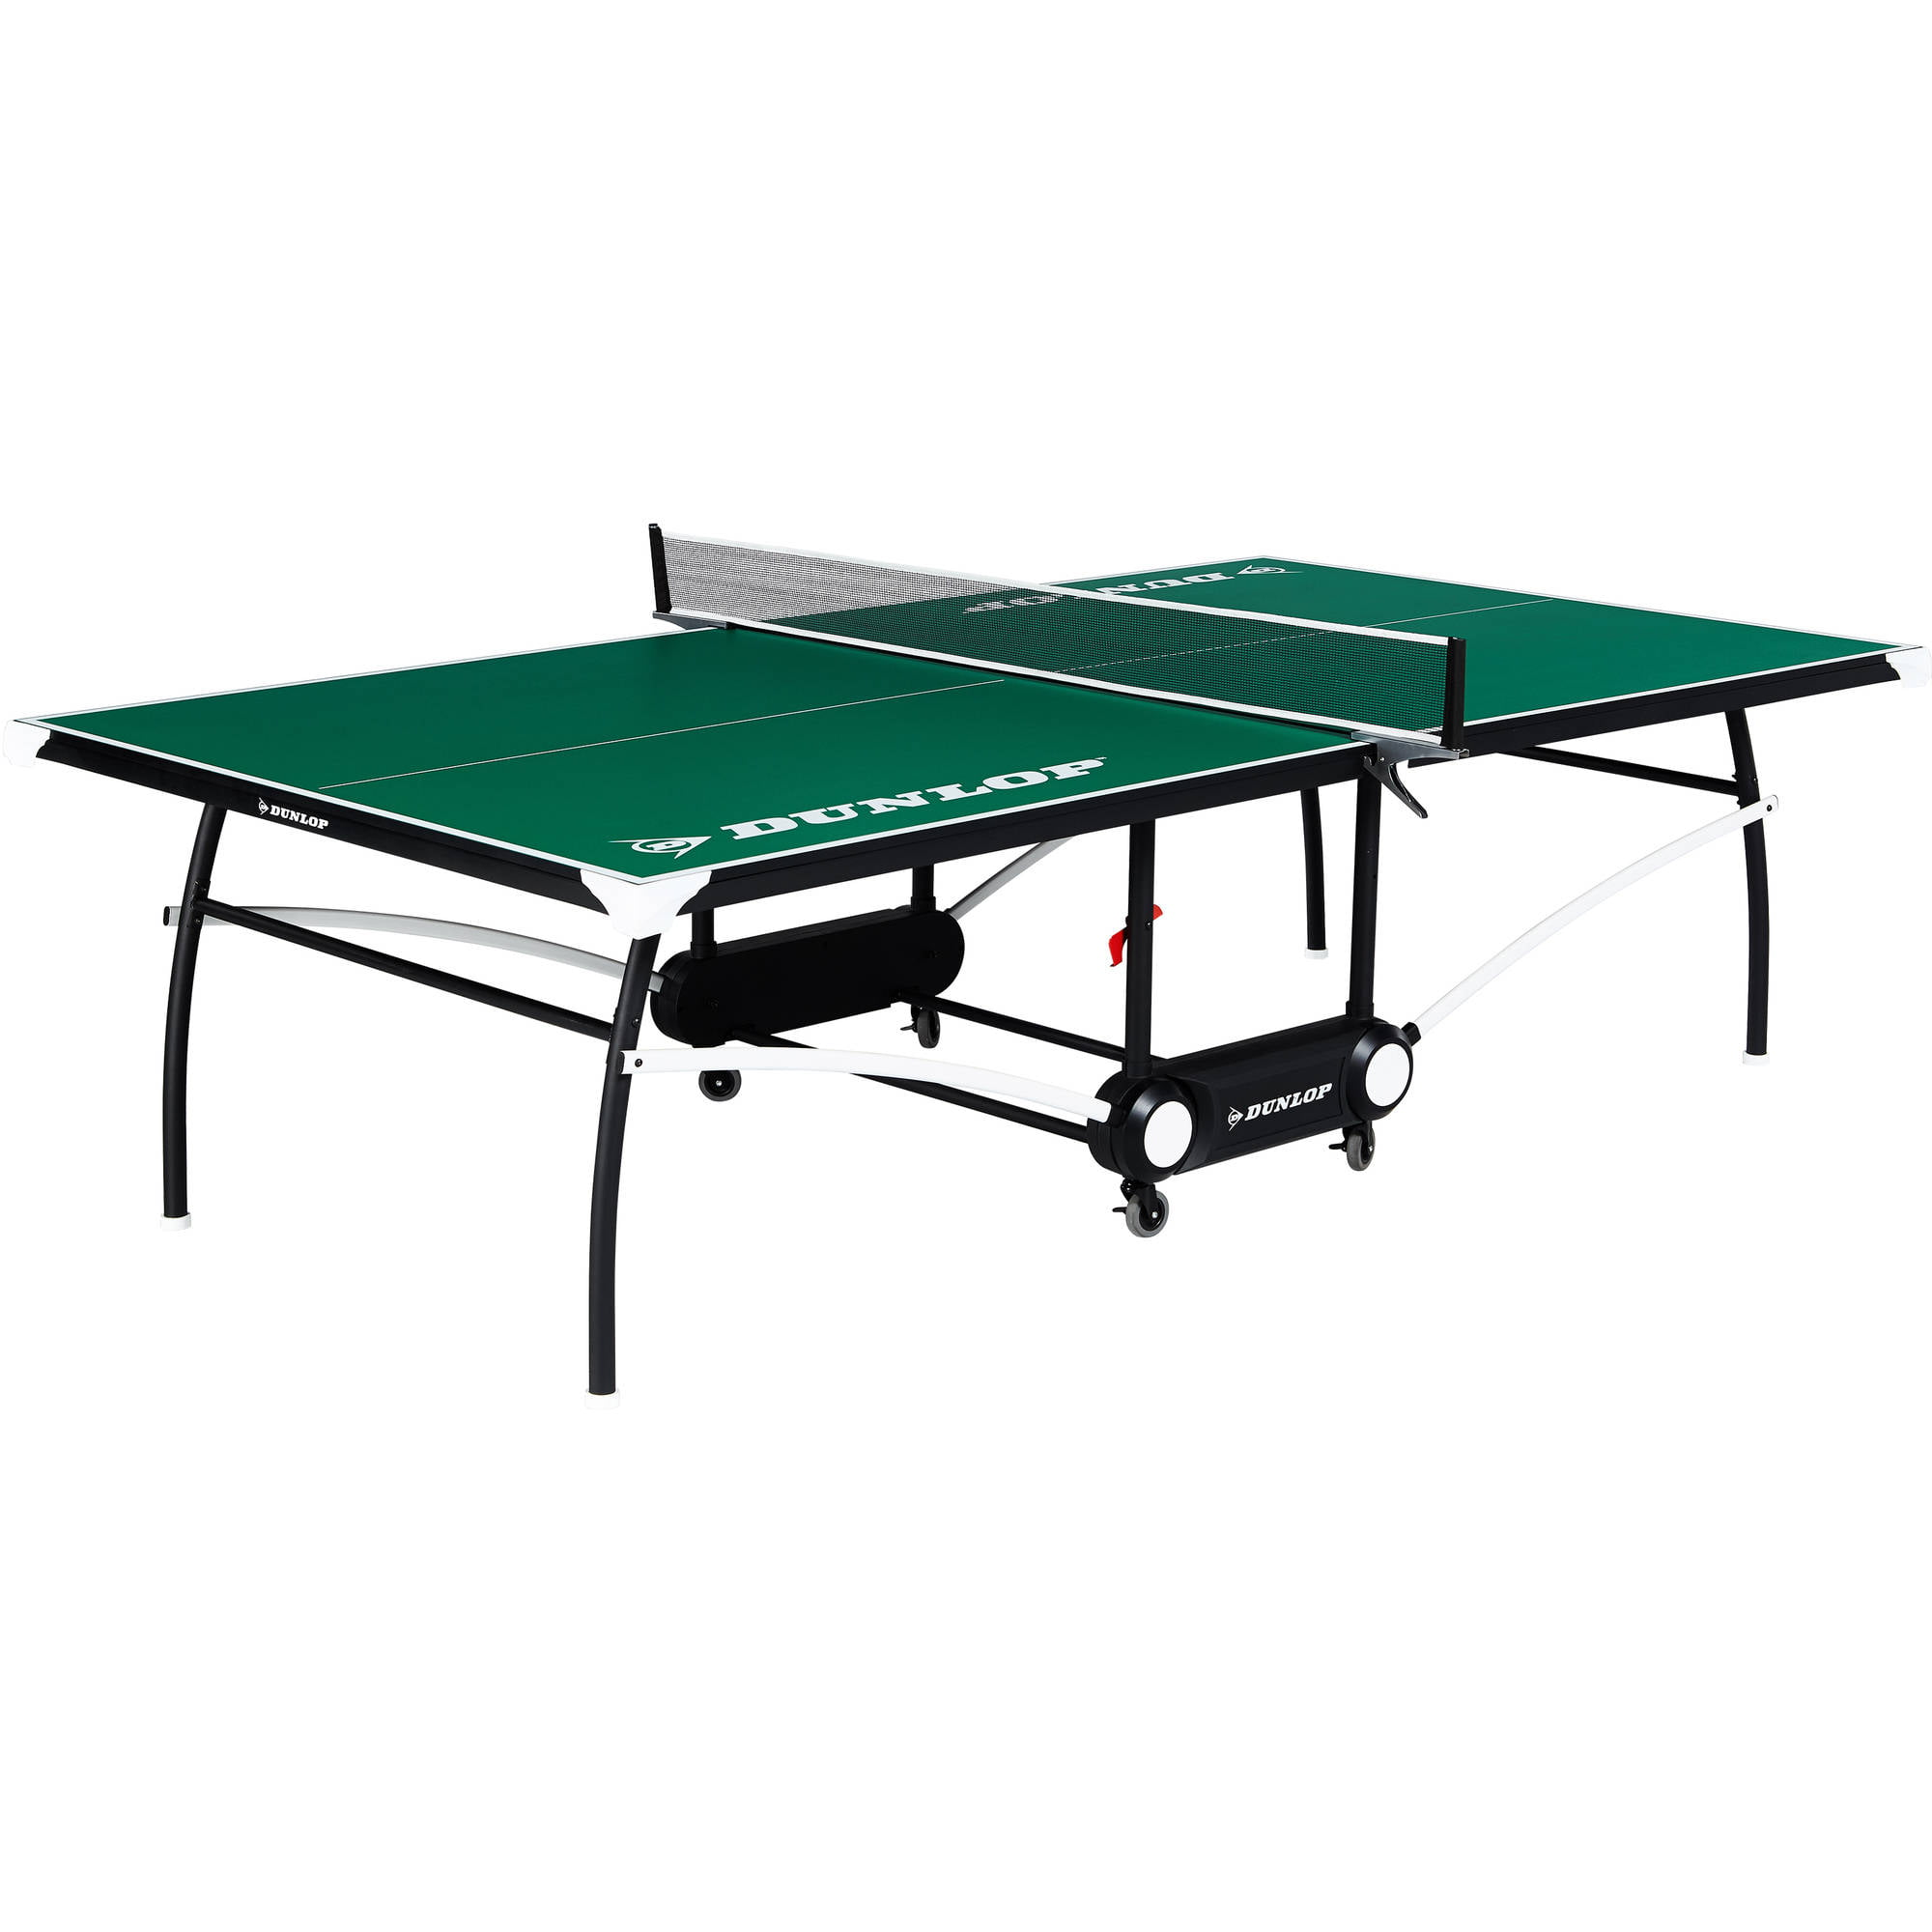 Dunlop 2-Piece Ping Pong Table, Official tournament size, green by Medal Sports